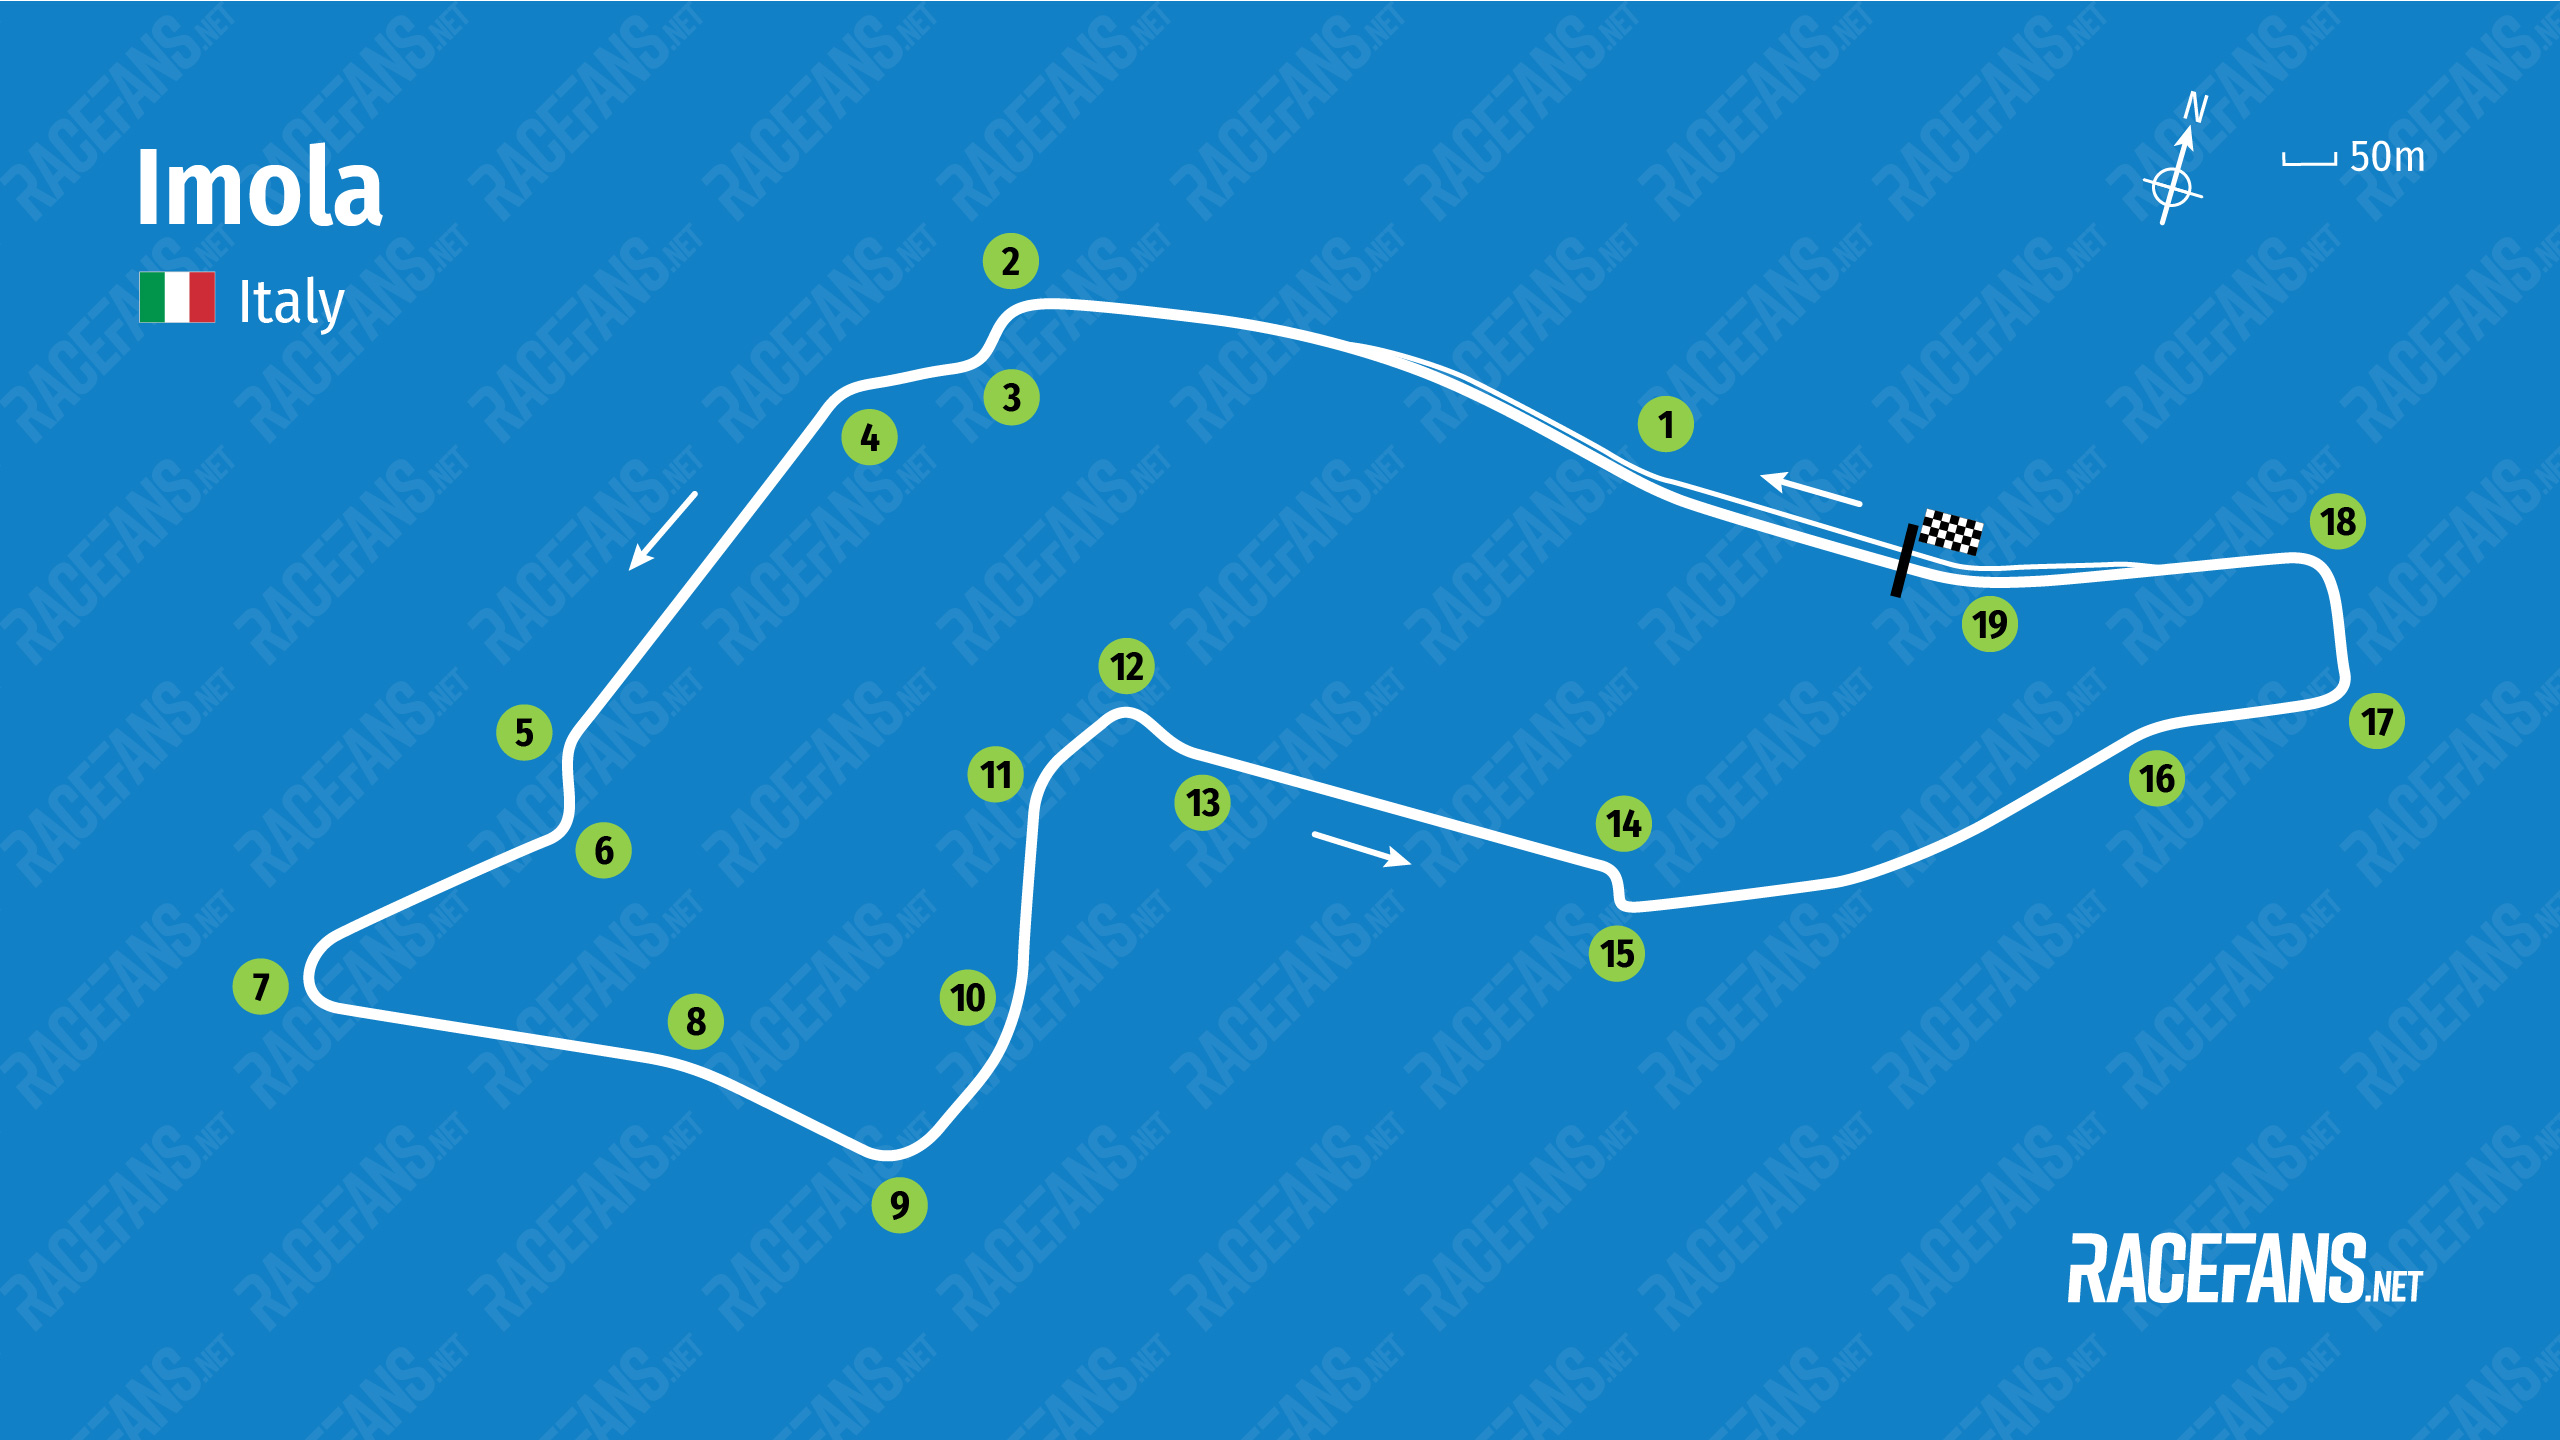 Imola circuit map, 2021